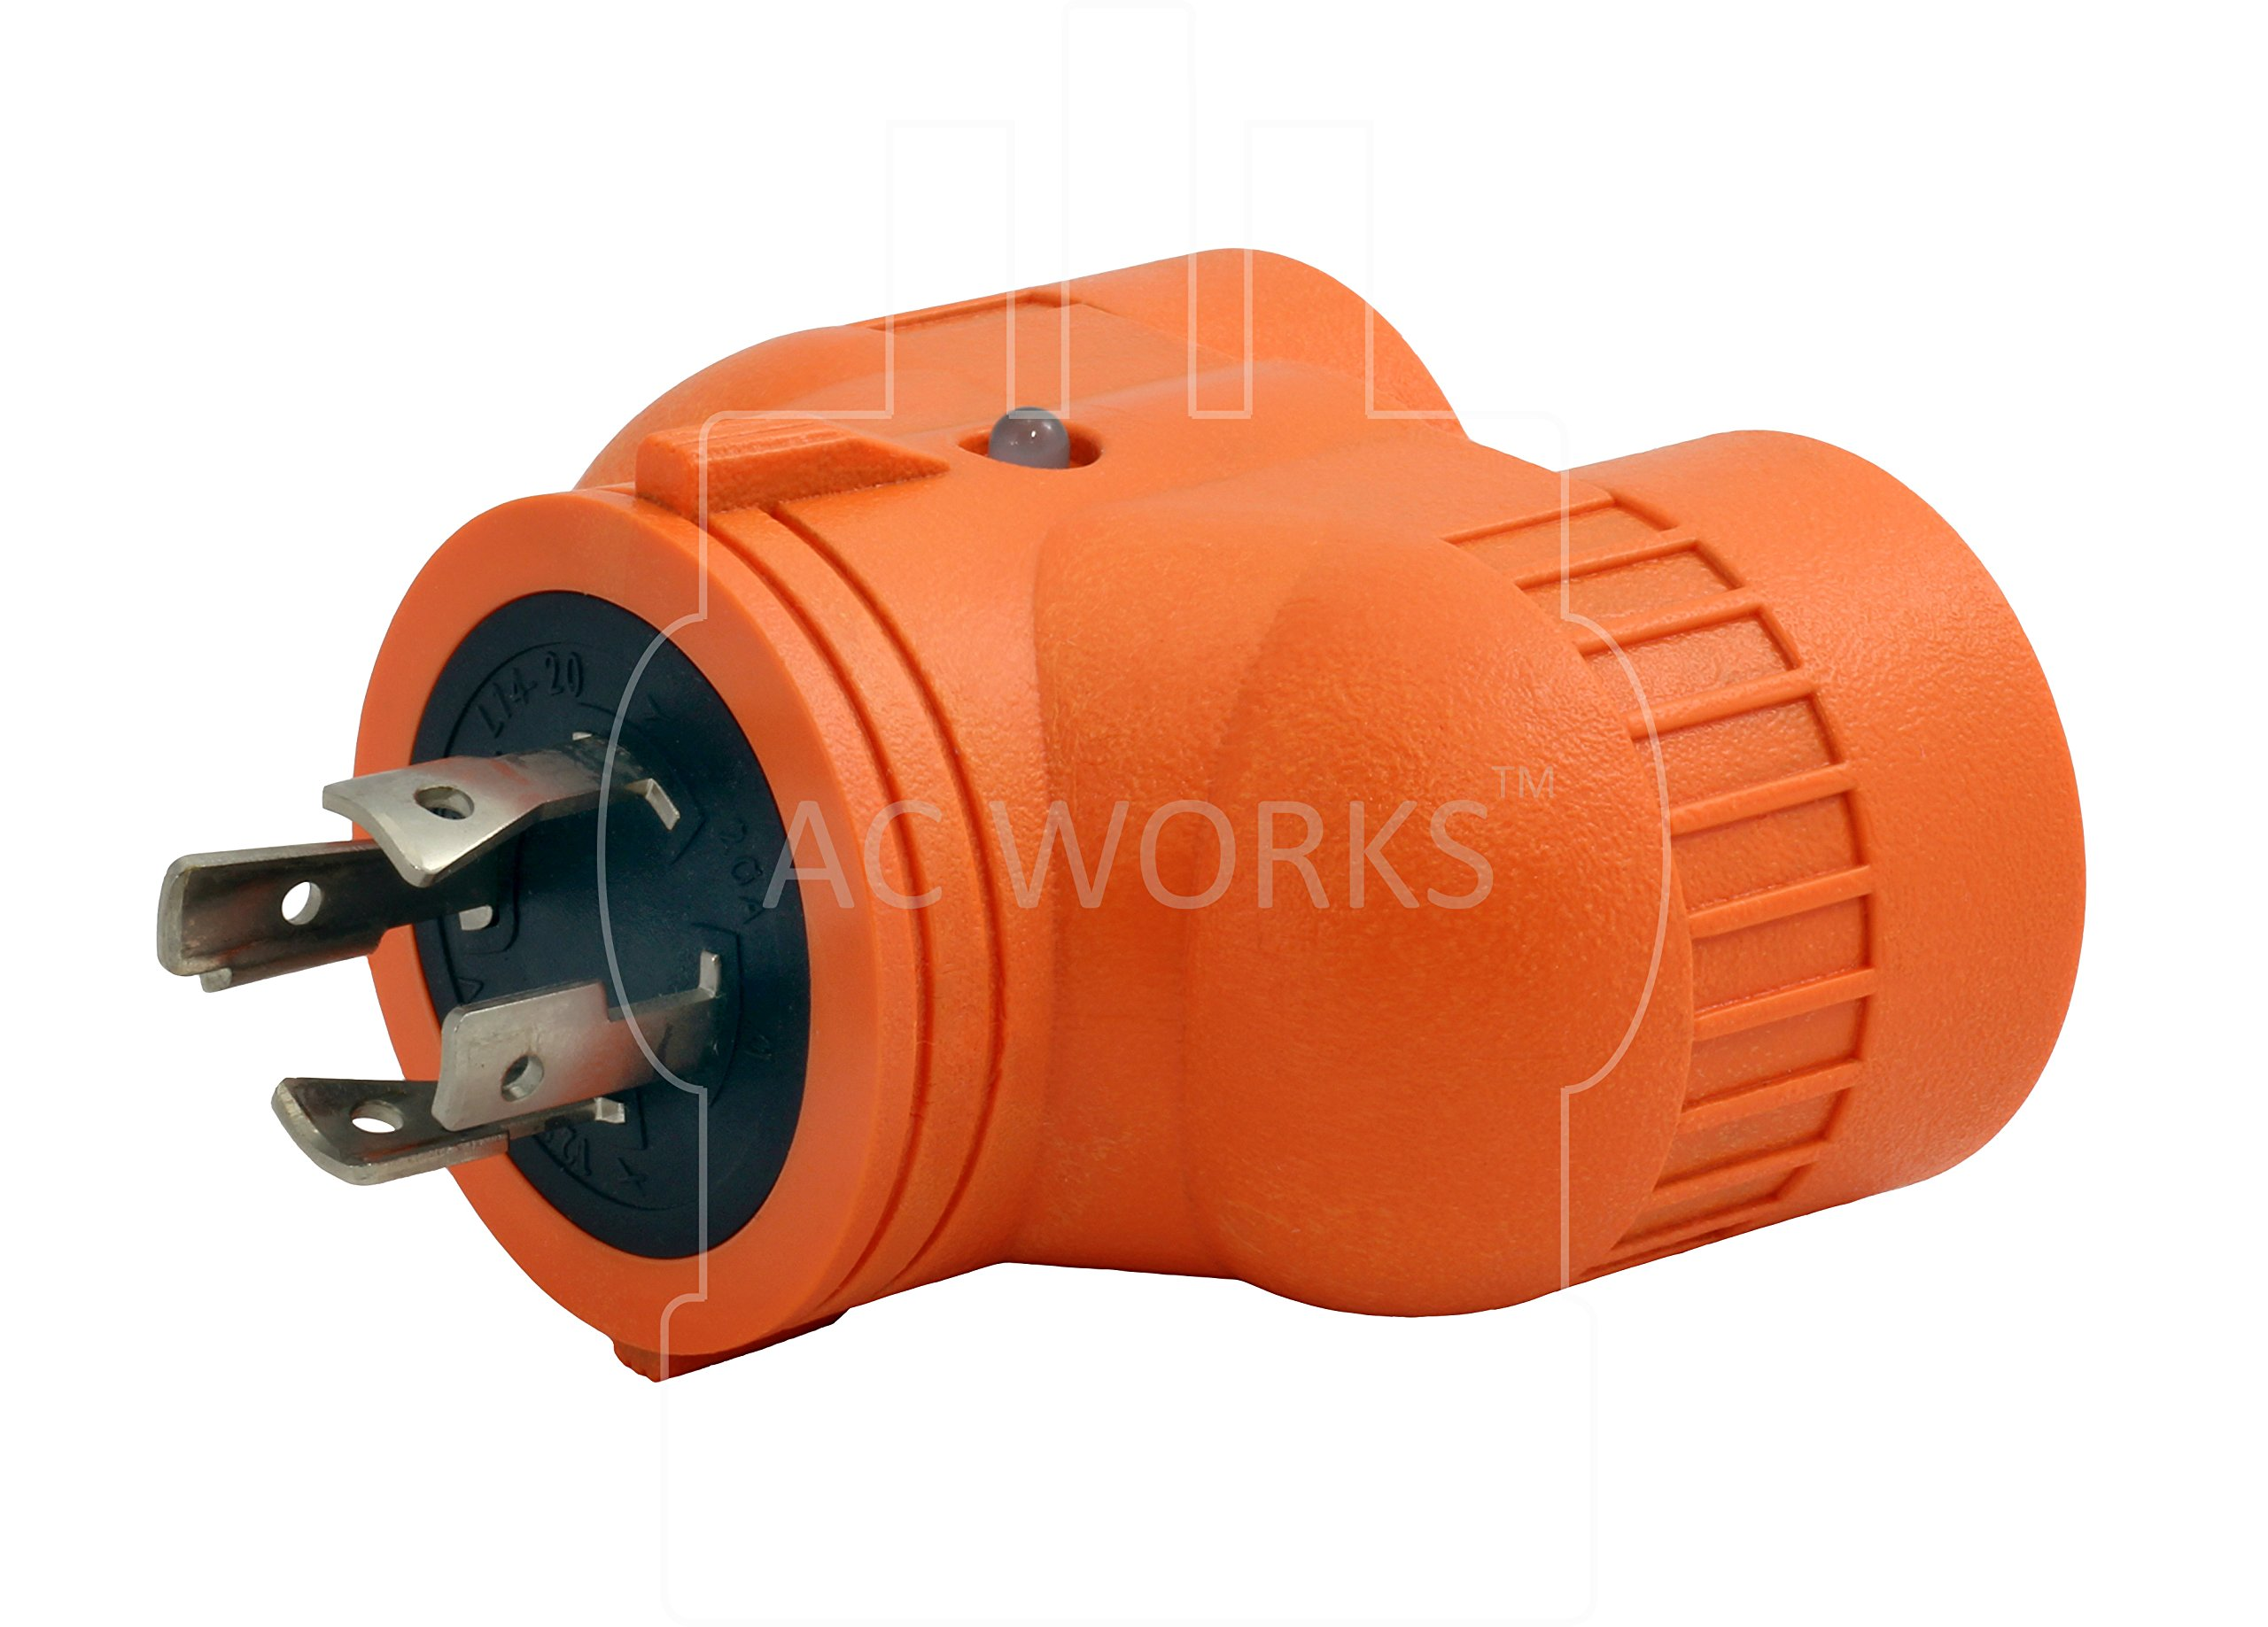 AC WORKS [ADVL1420520] Generator V-DUO Adapter NEMA L14-20P 20Amp 4-Prong Locking Plug to (2) 15/20Amp Household Connectors by AC WORKS (Image #3)